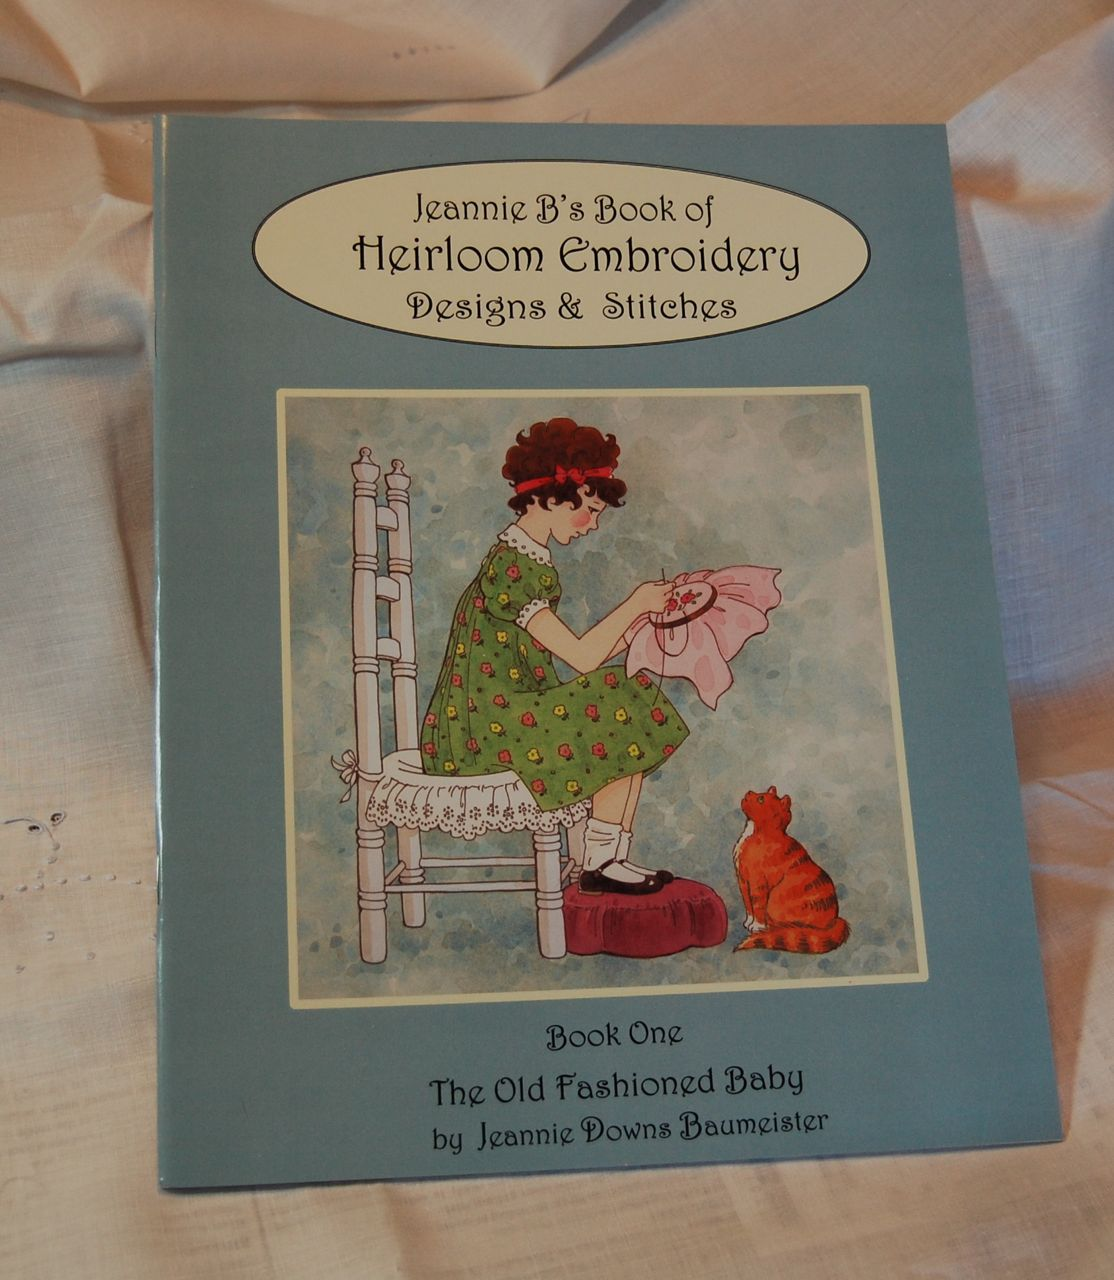 Jeannie B's Embroidery Book